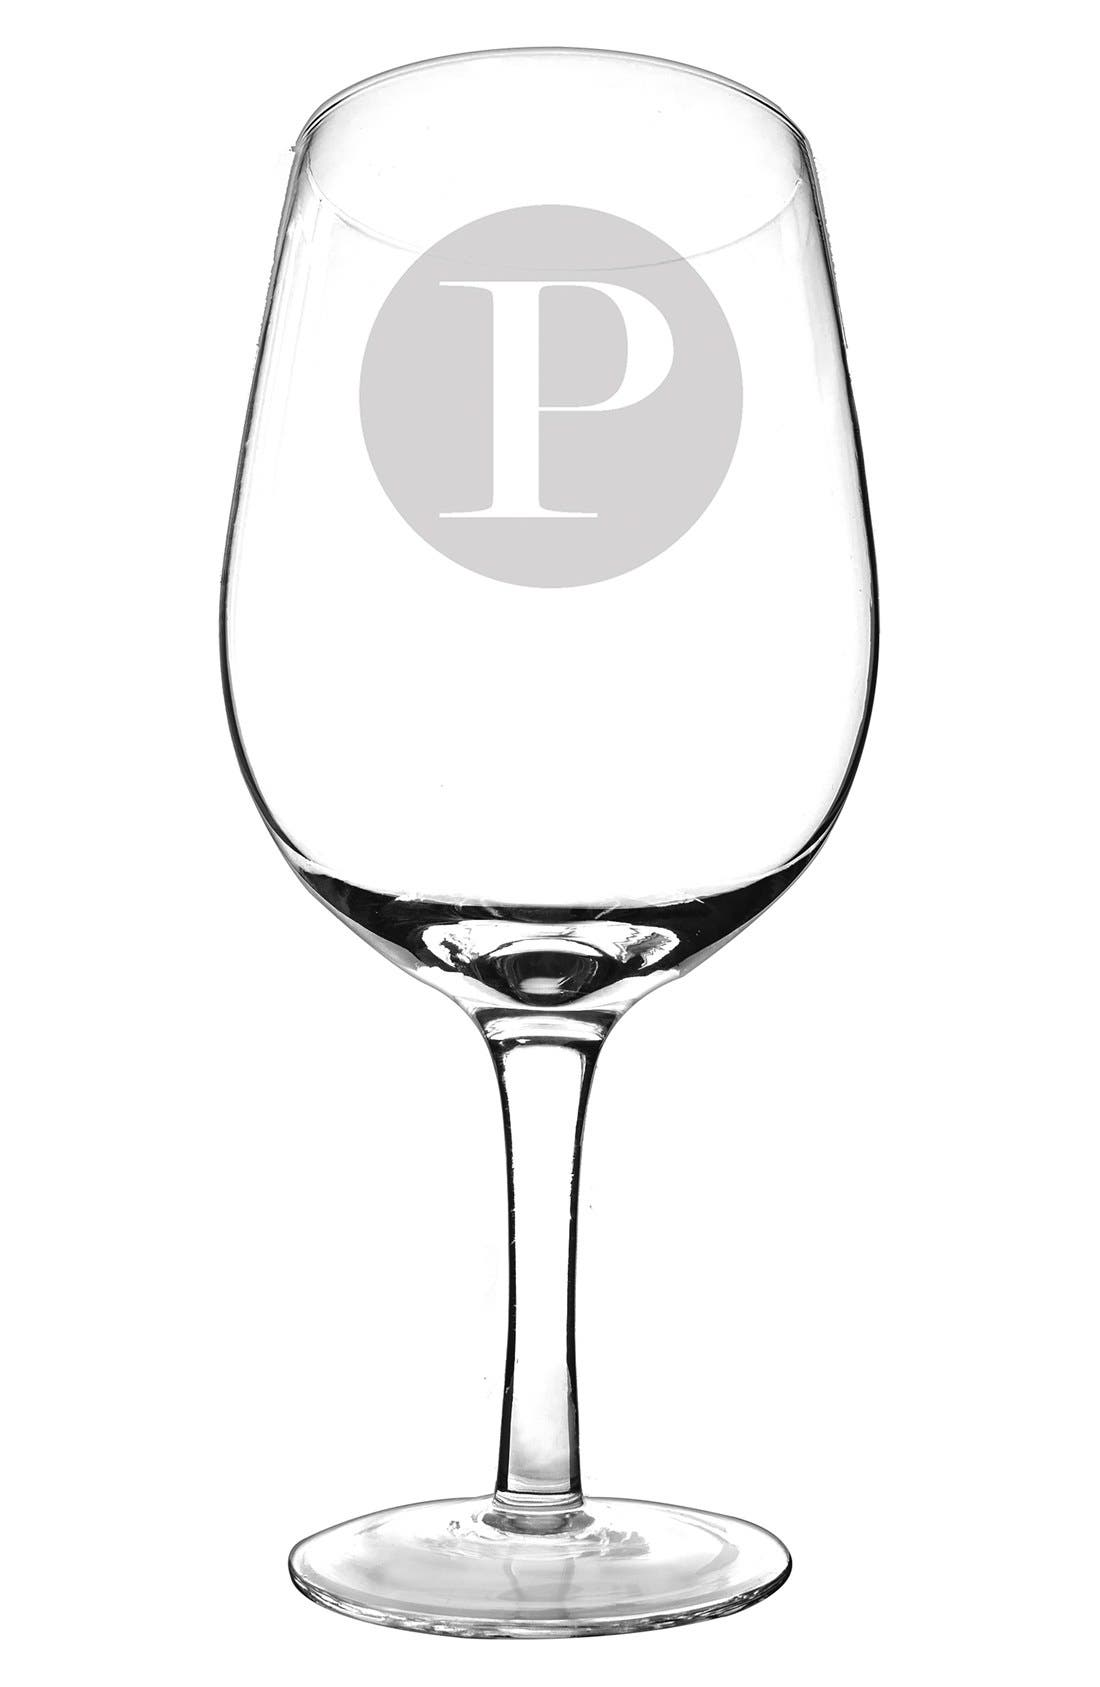 Alternate Image 1 Selected - Cathy's Concepts Monogram 'XL' Novelty Wine Glass